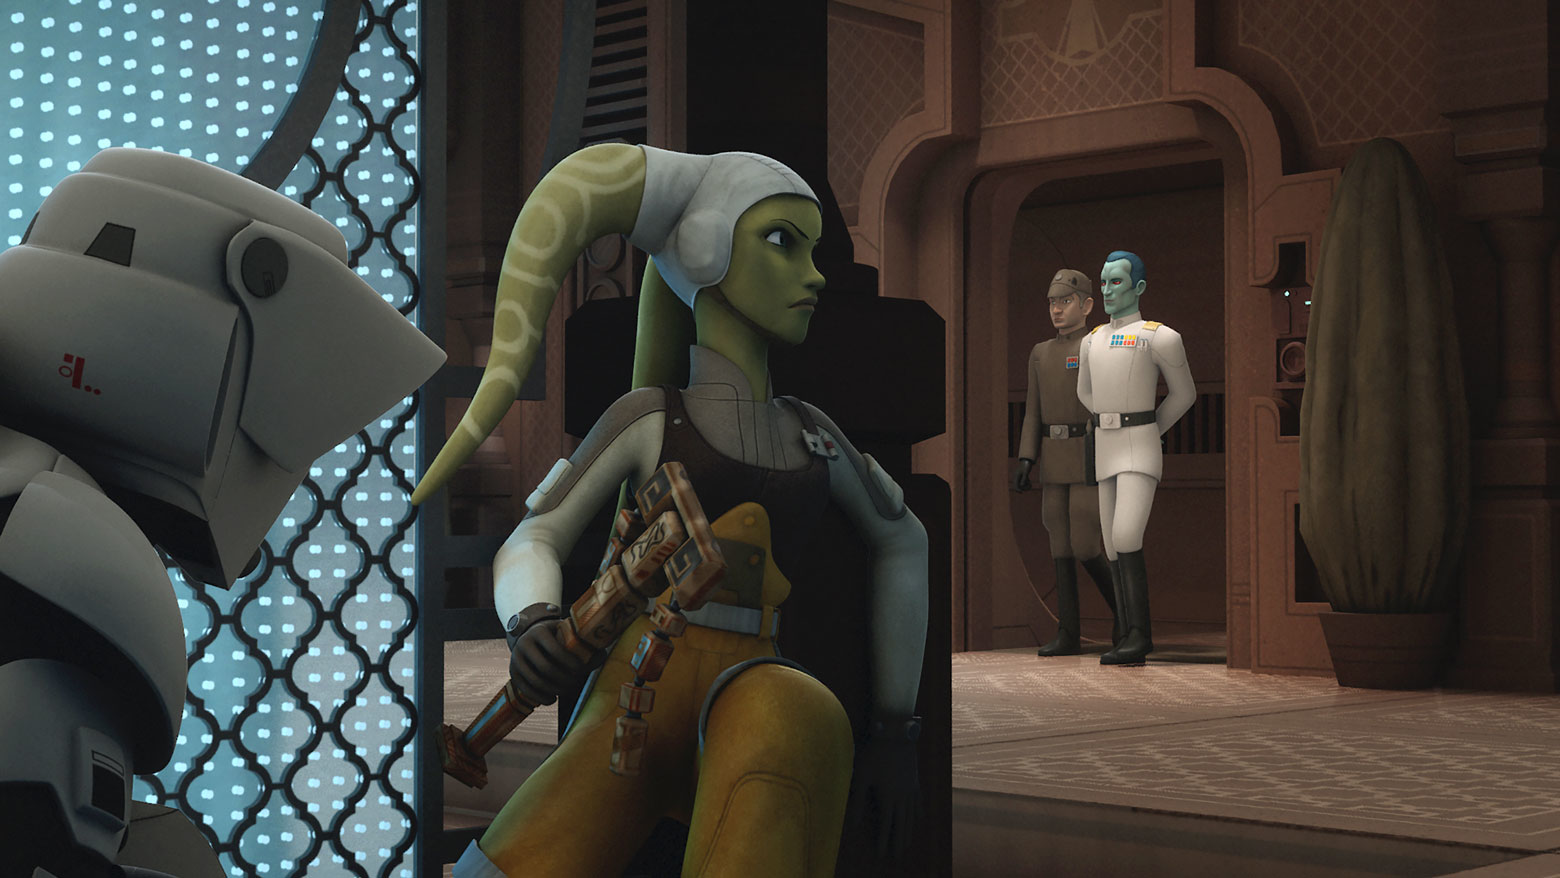 Hera and Ezra hide from Thrawn in Star Wars Rebels